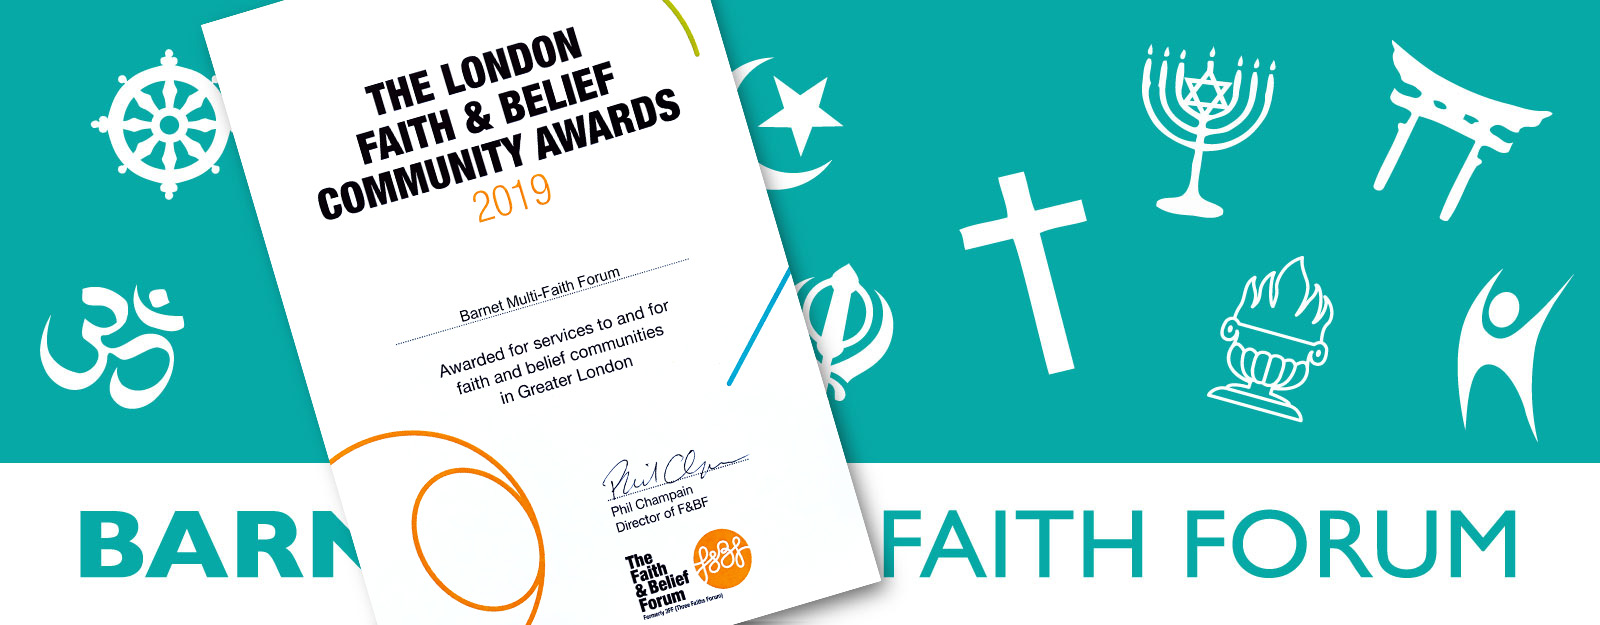 Barnet Multi Faith Forum recognised in the London Faith & Belief Community Awards